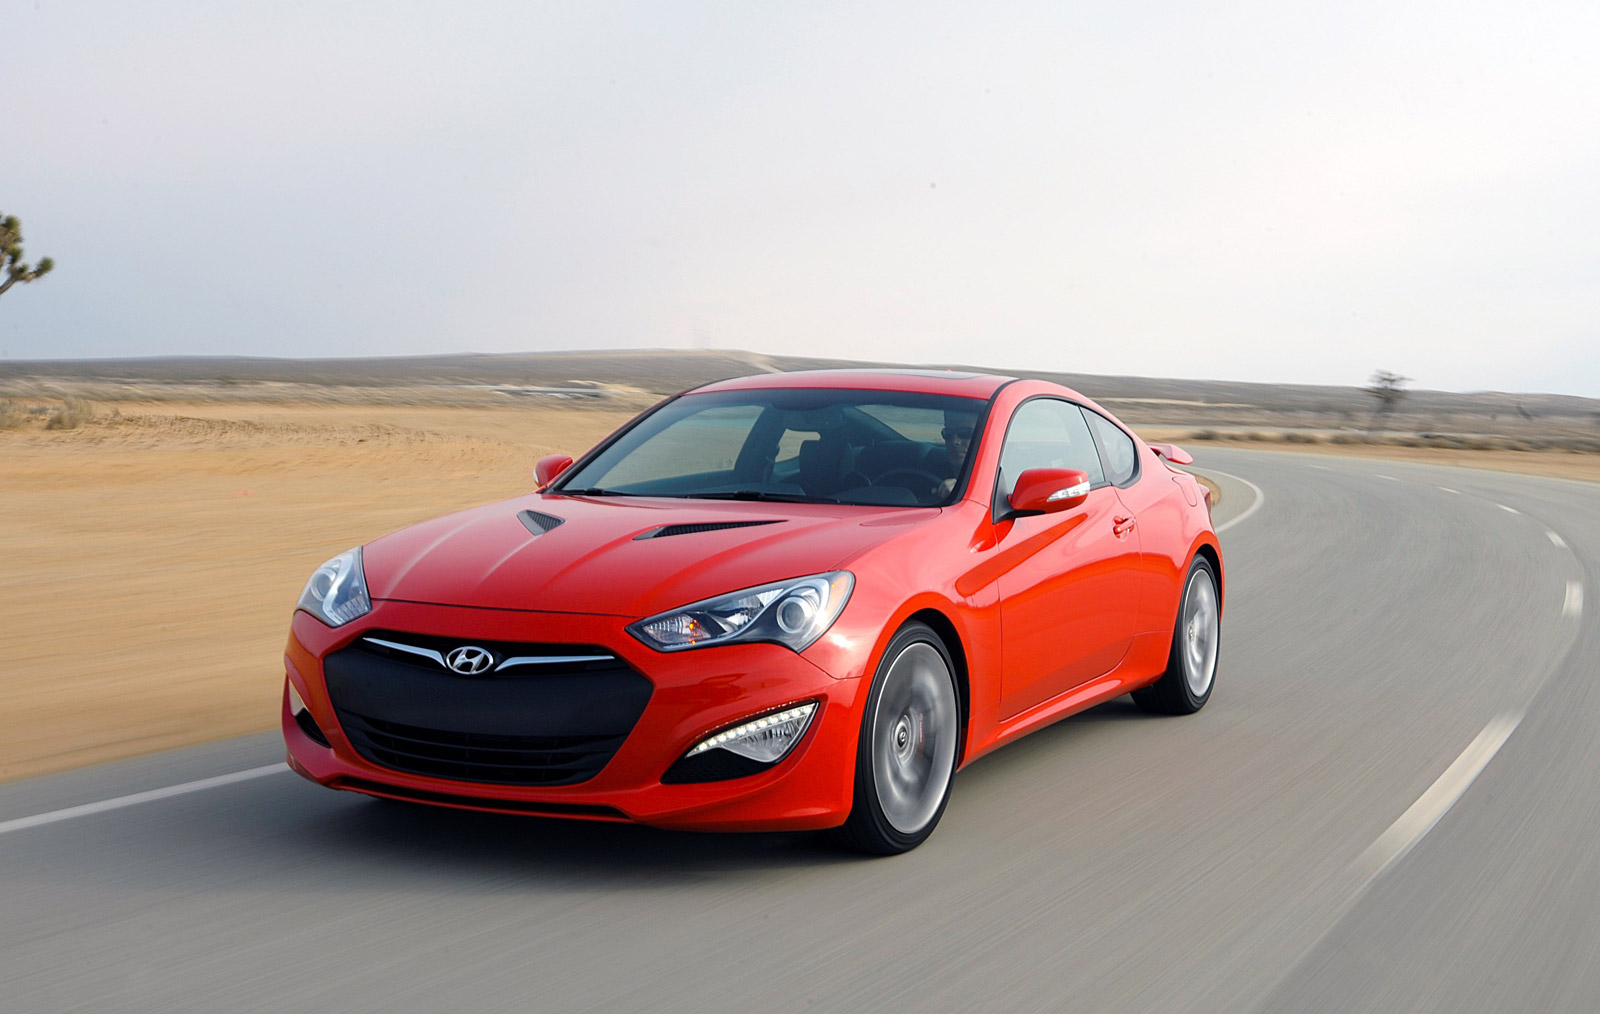 2015 Hyundai Genesis Coupe Drops Four-Cylinder, Gets $27,645 Starting Price